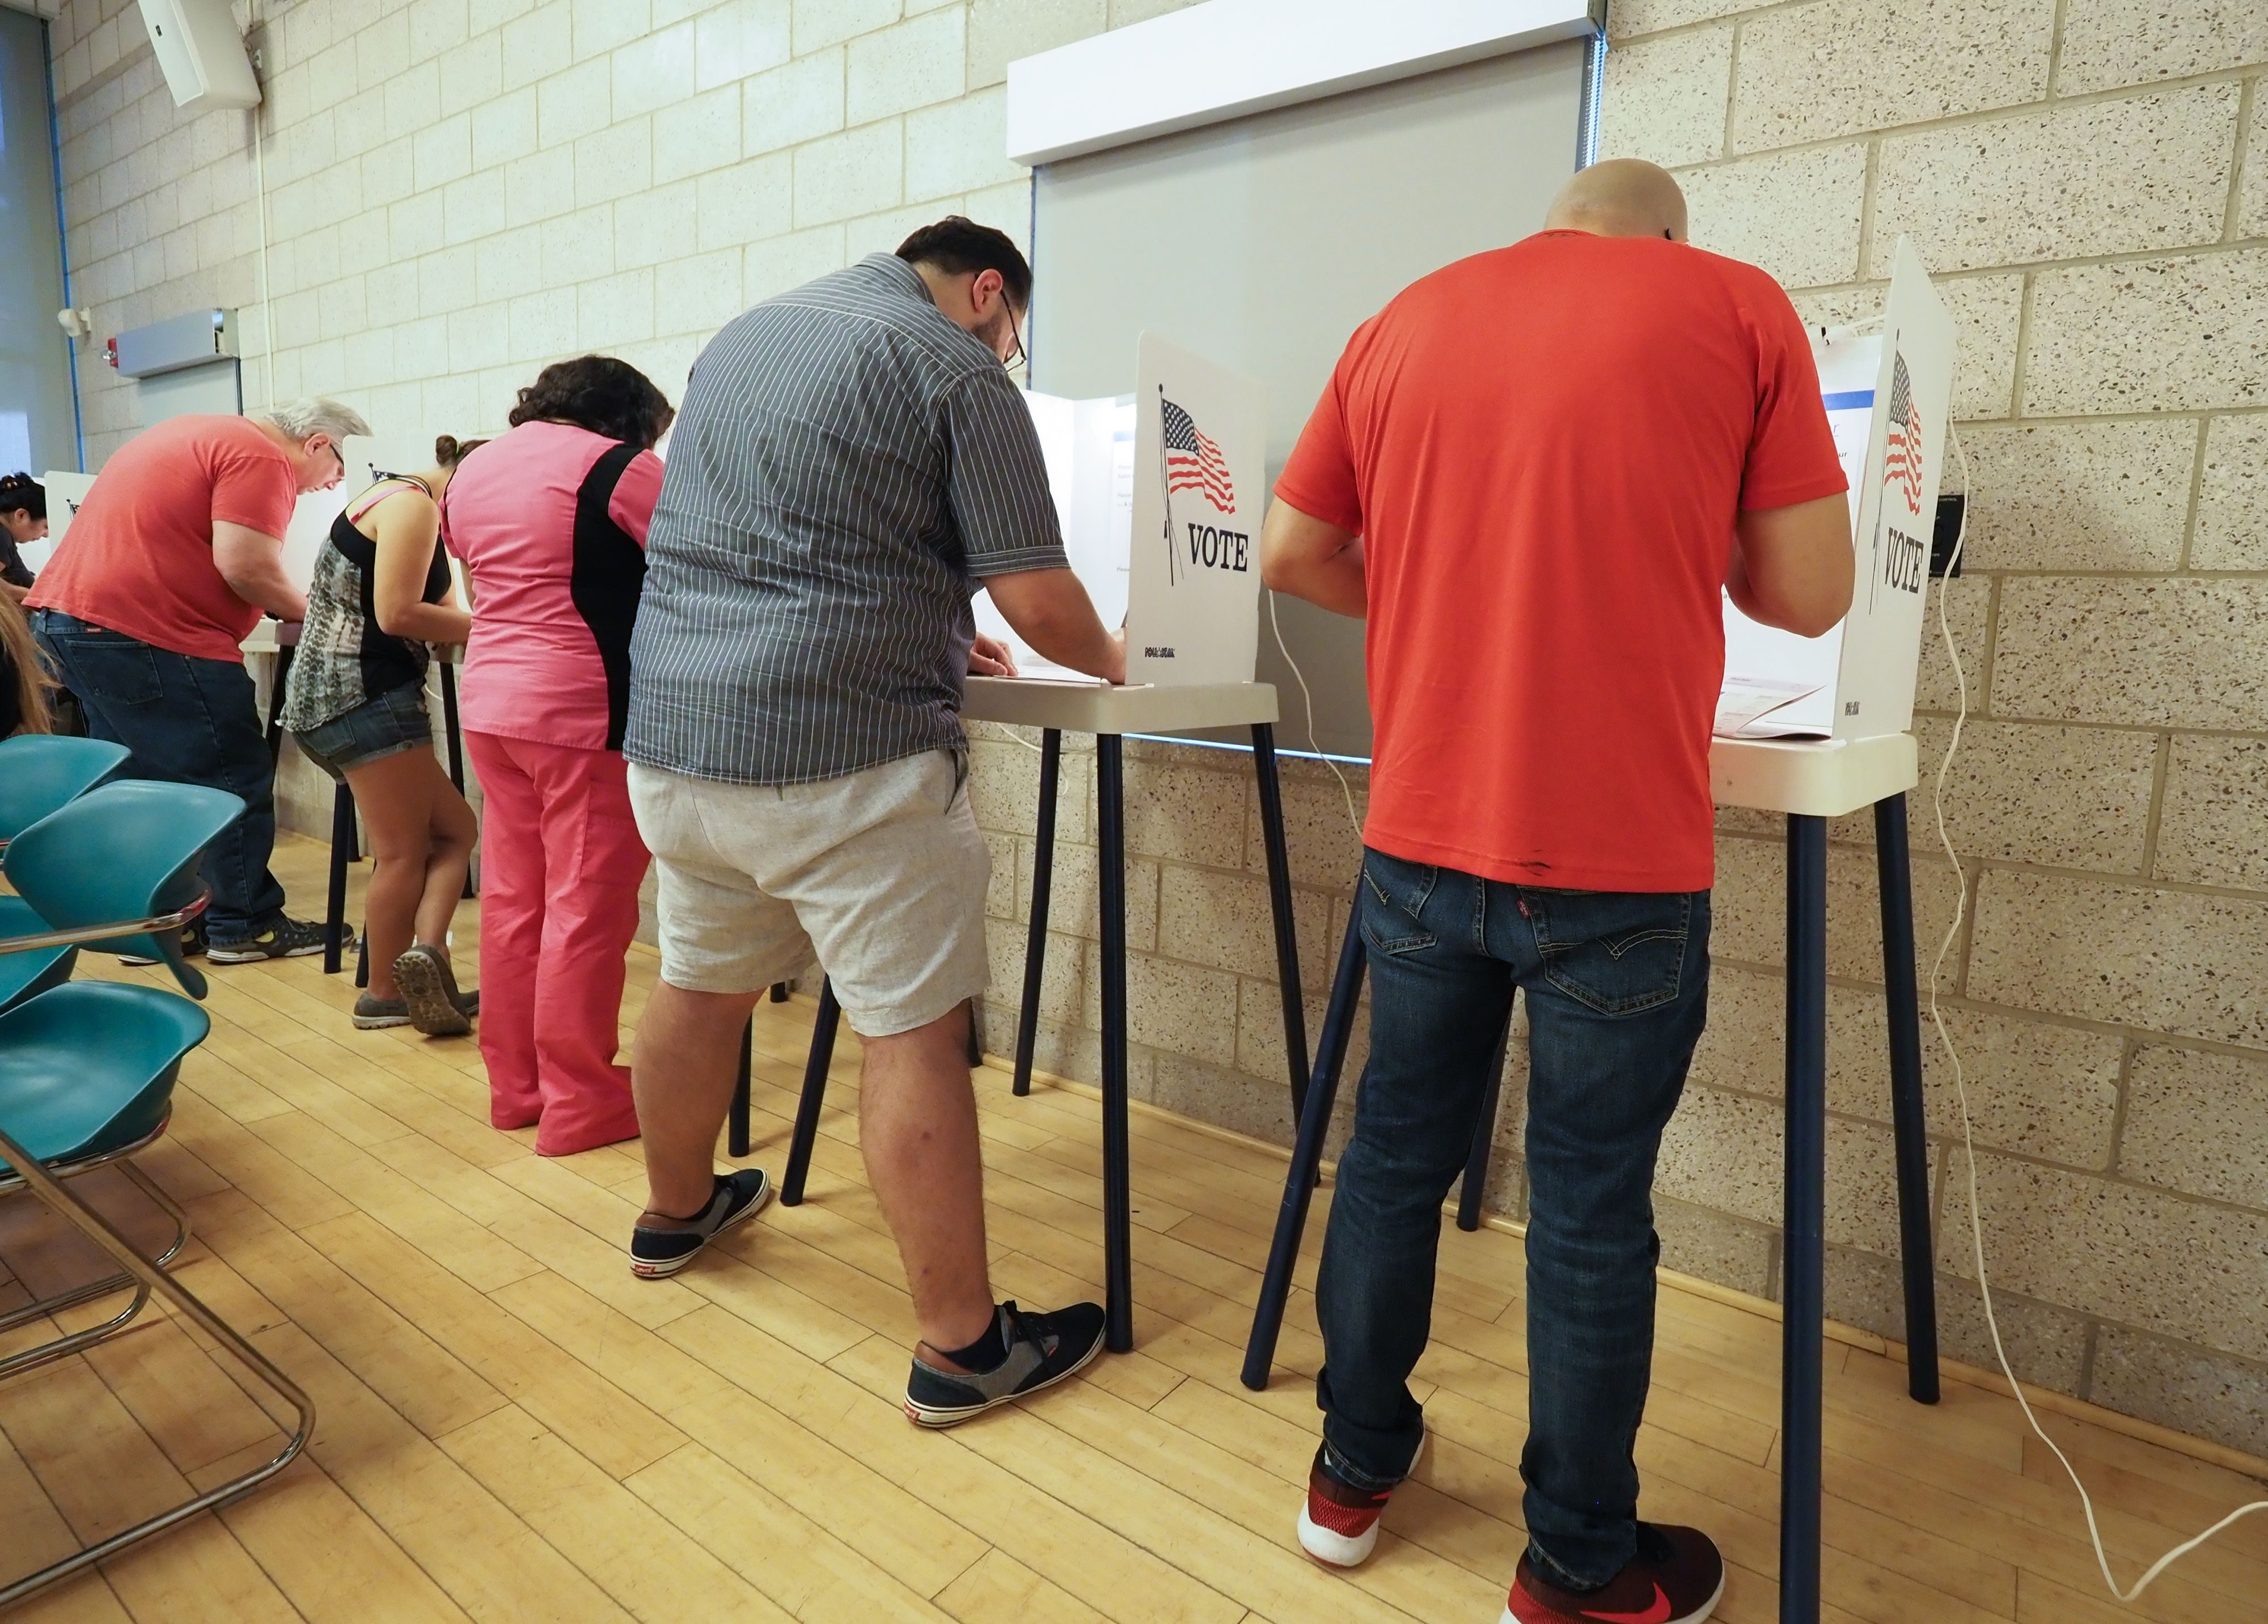 People cast their ballot during early voting for the midterm elections in the Lake View Terrace neighborhood of Los Angeles, California.